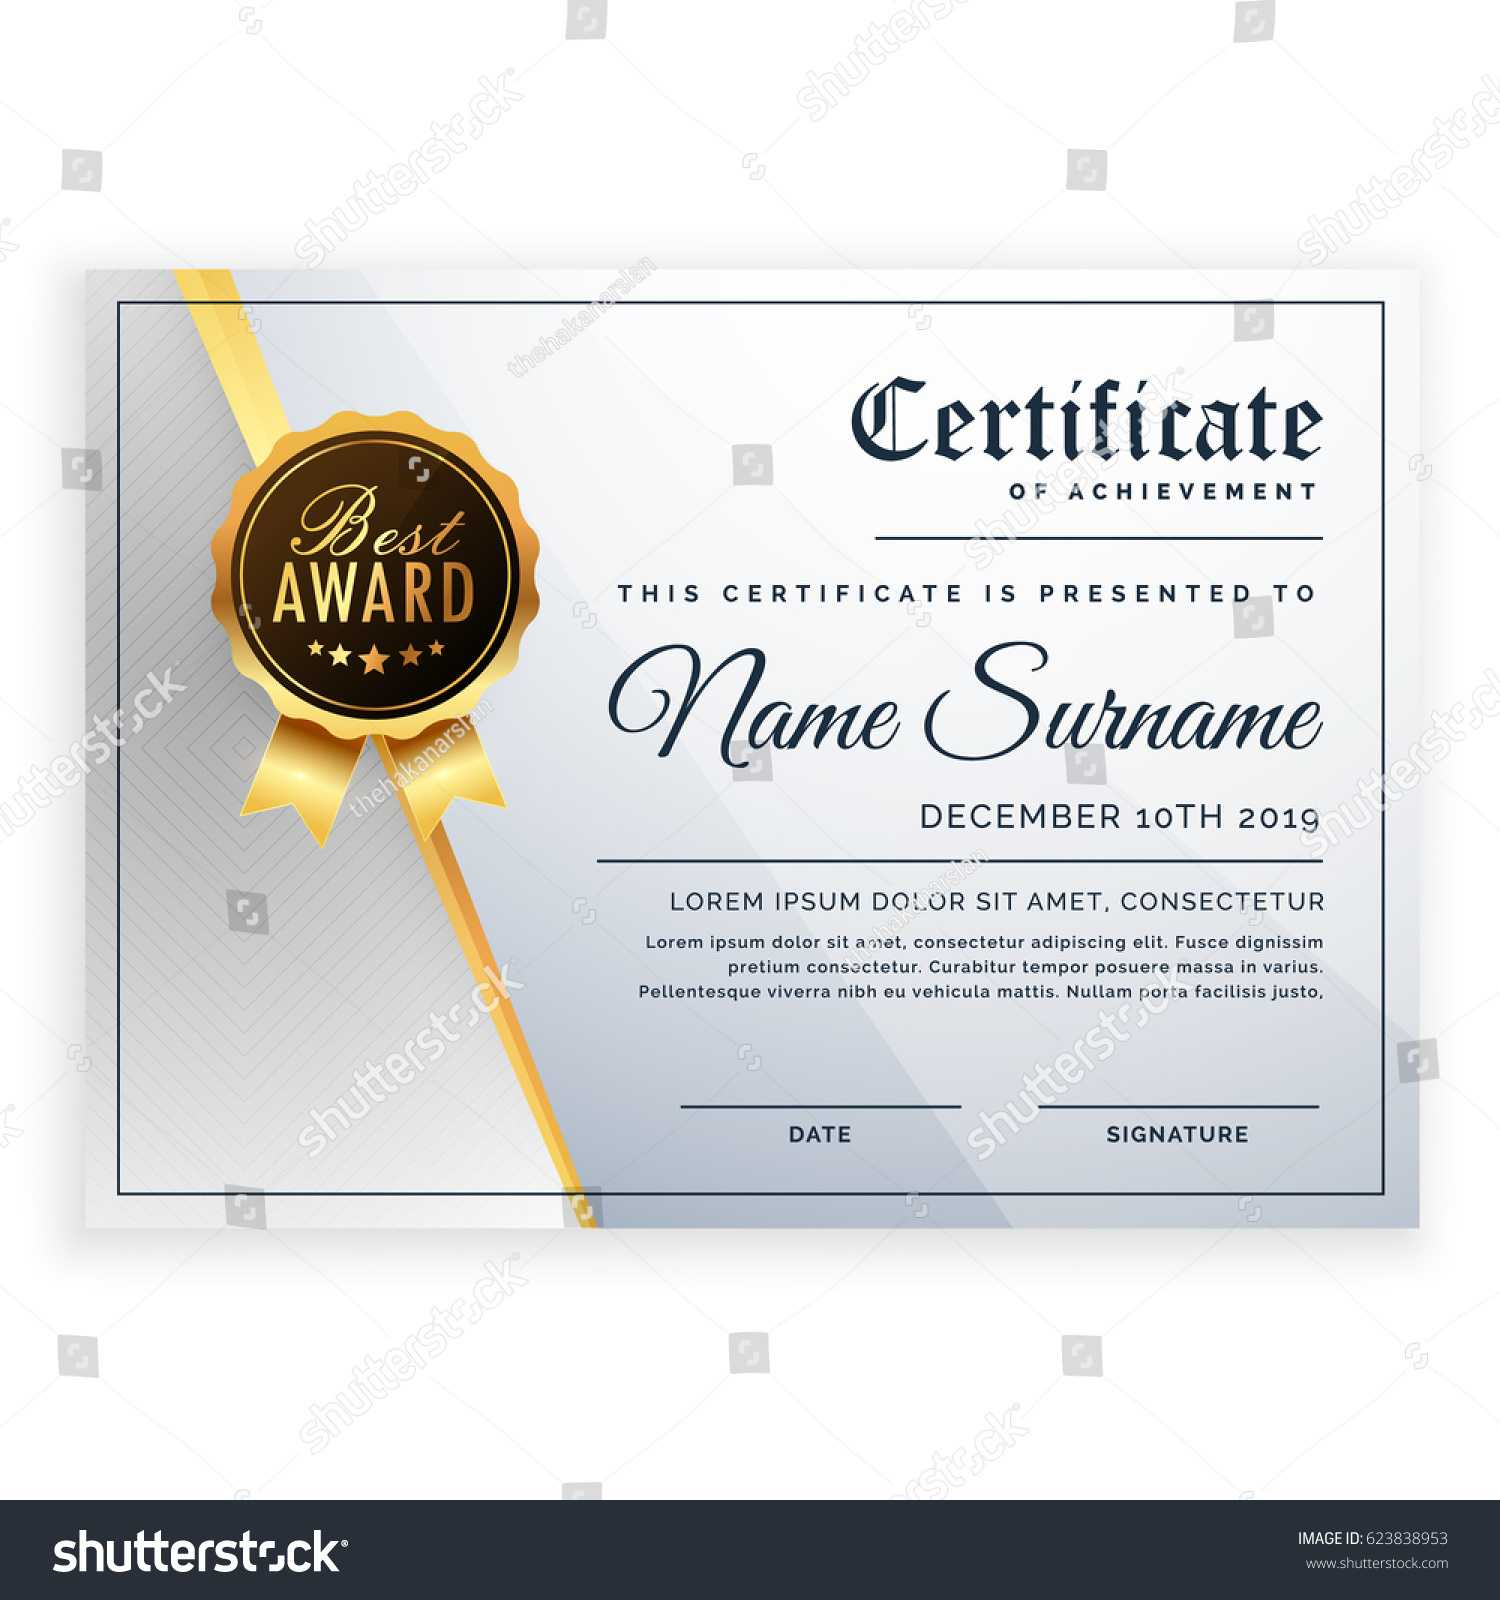 Vector Certificate Template Beautiful Certificate Template With Regard To Beautiful Certificate Templates